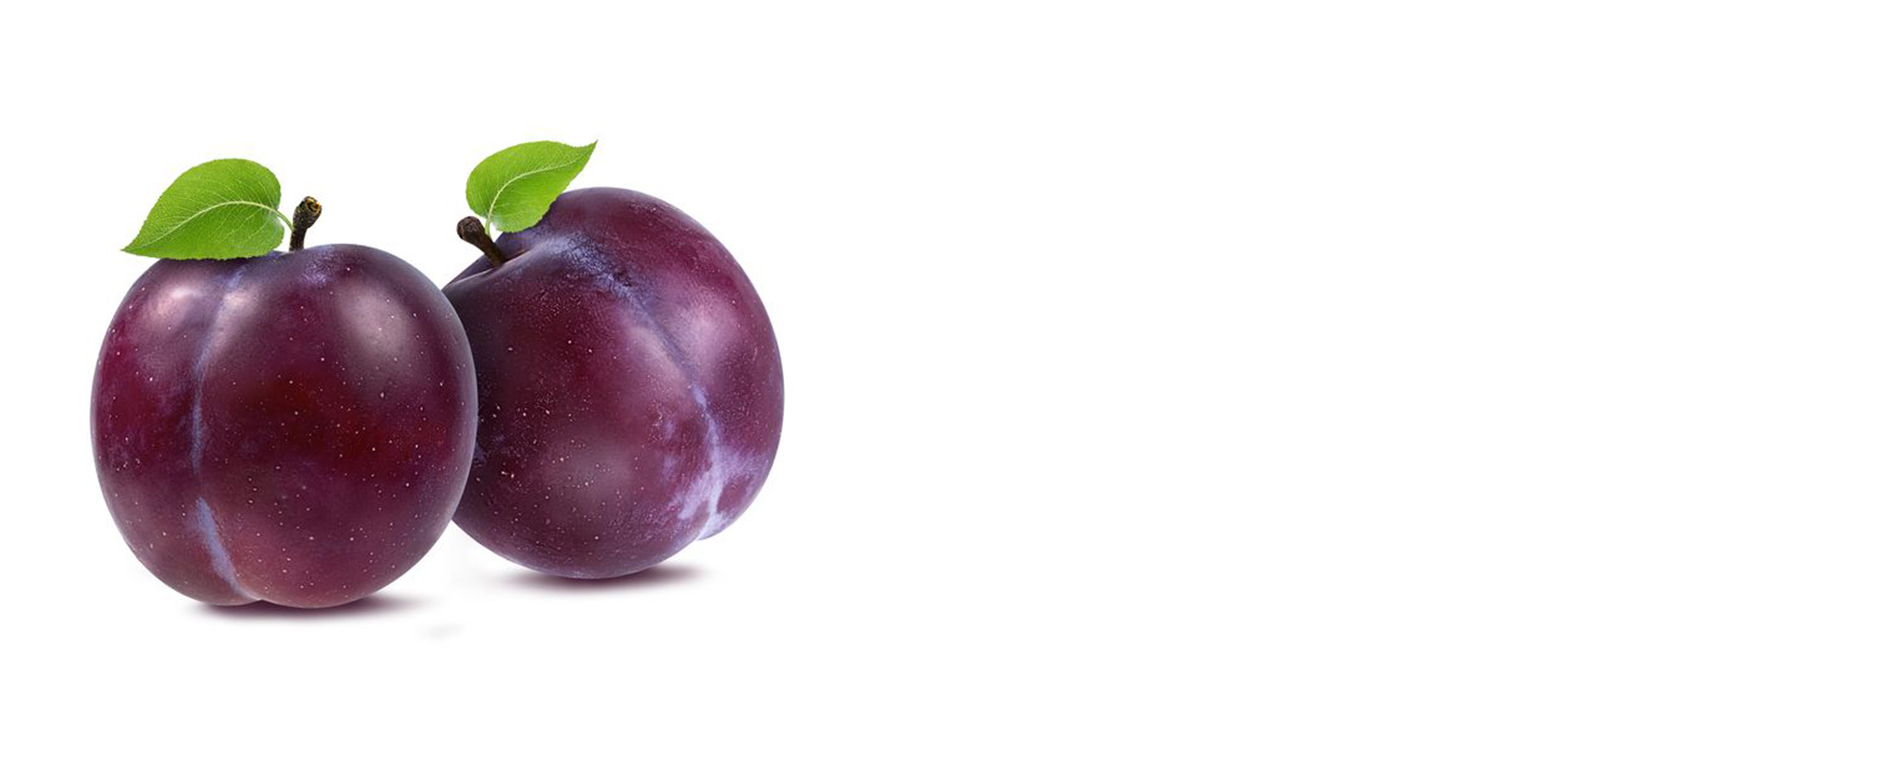 Plums image